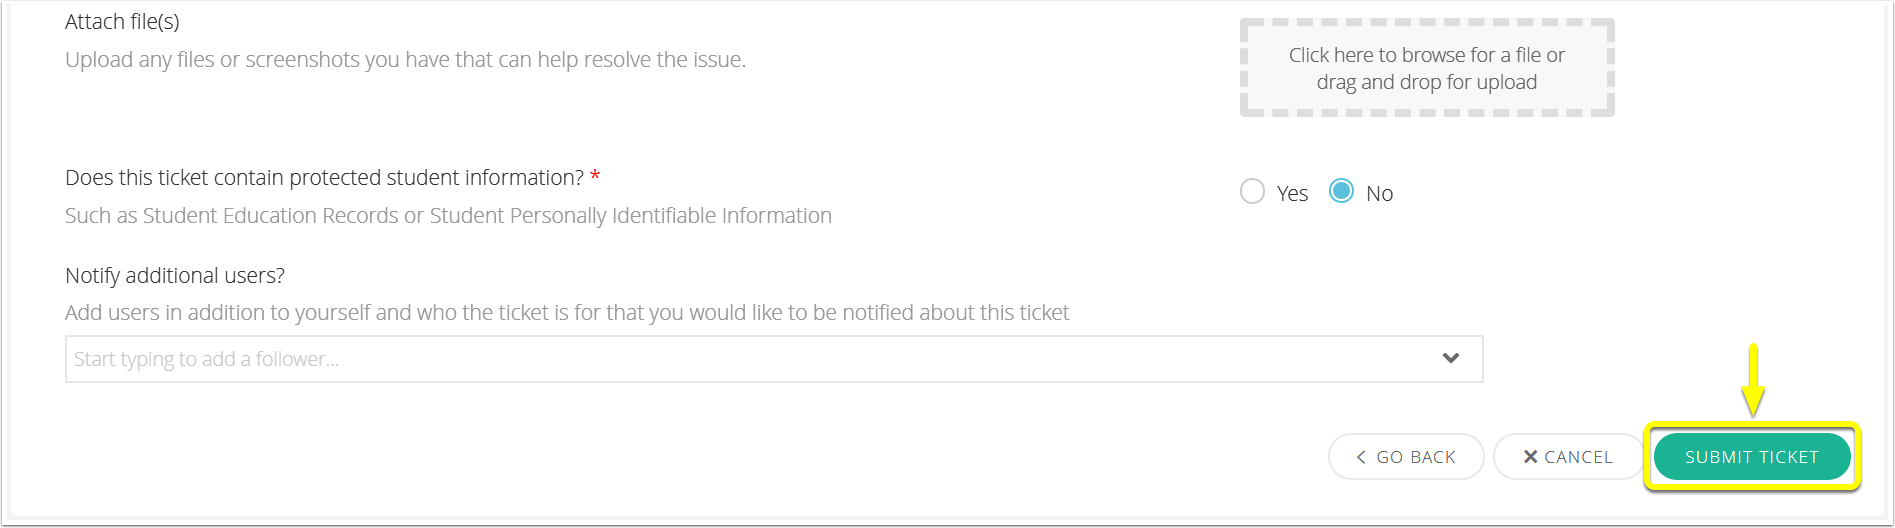 Ticket_Submission.png